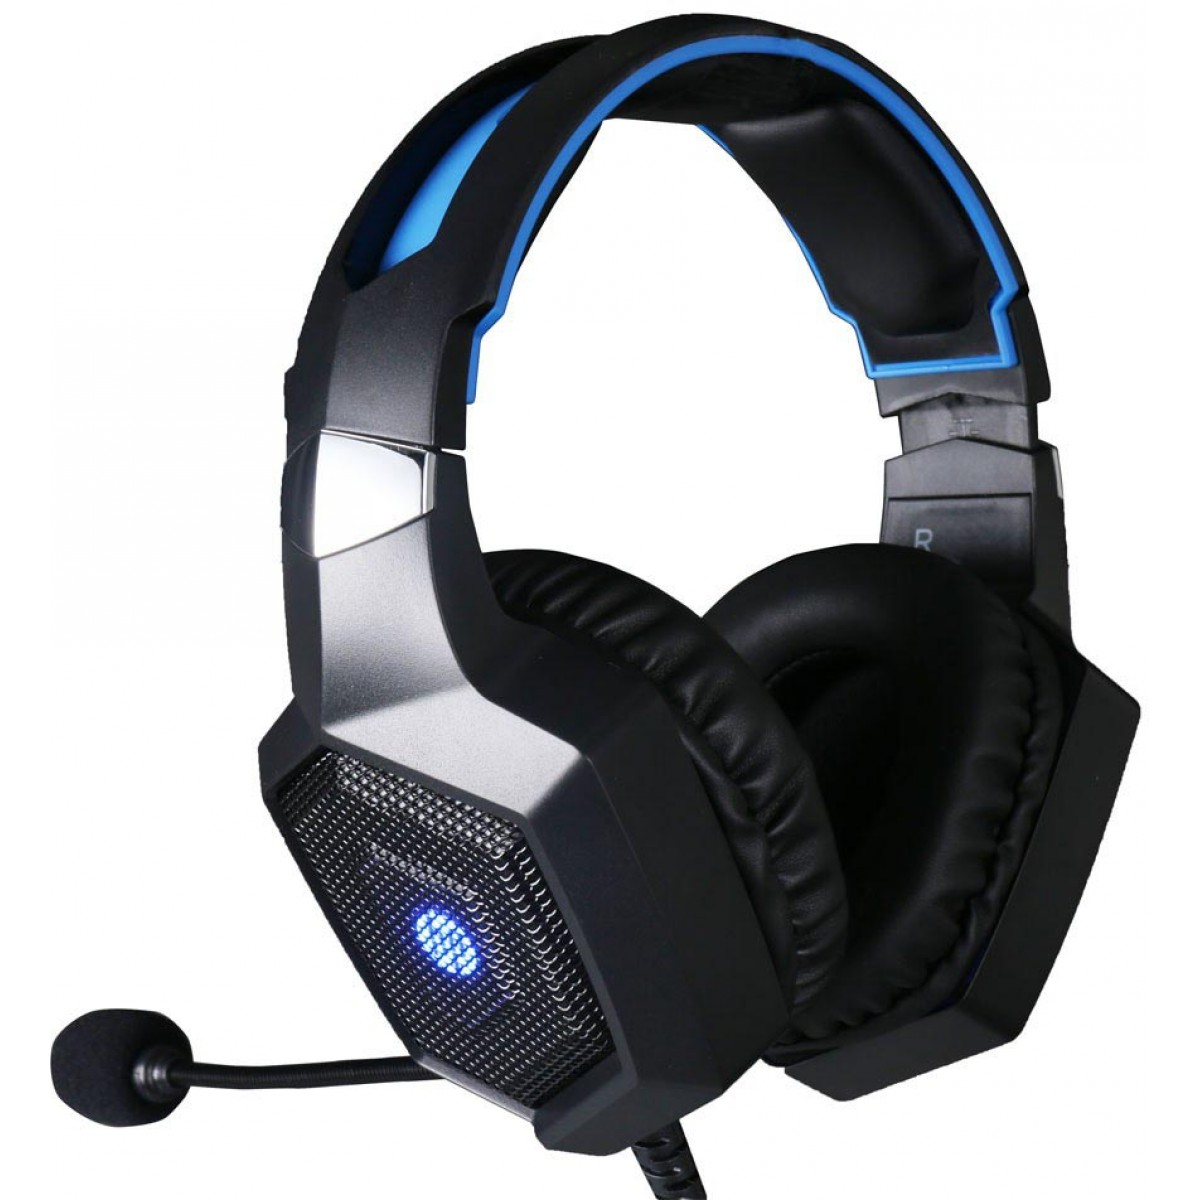 HEADSET GAMER USB H320GS 7.1 LED AZUL HP  - Fatality